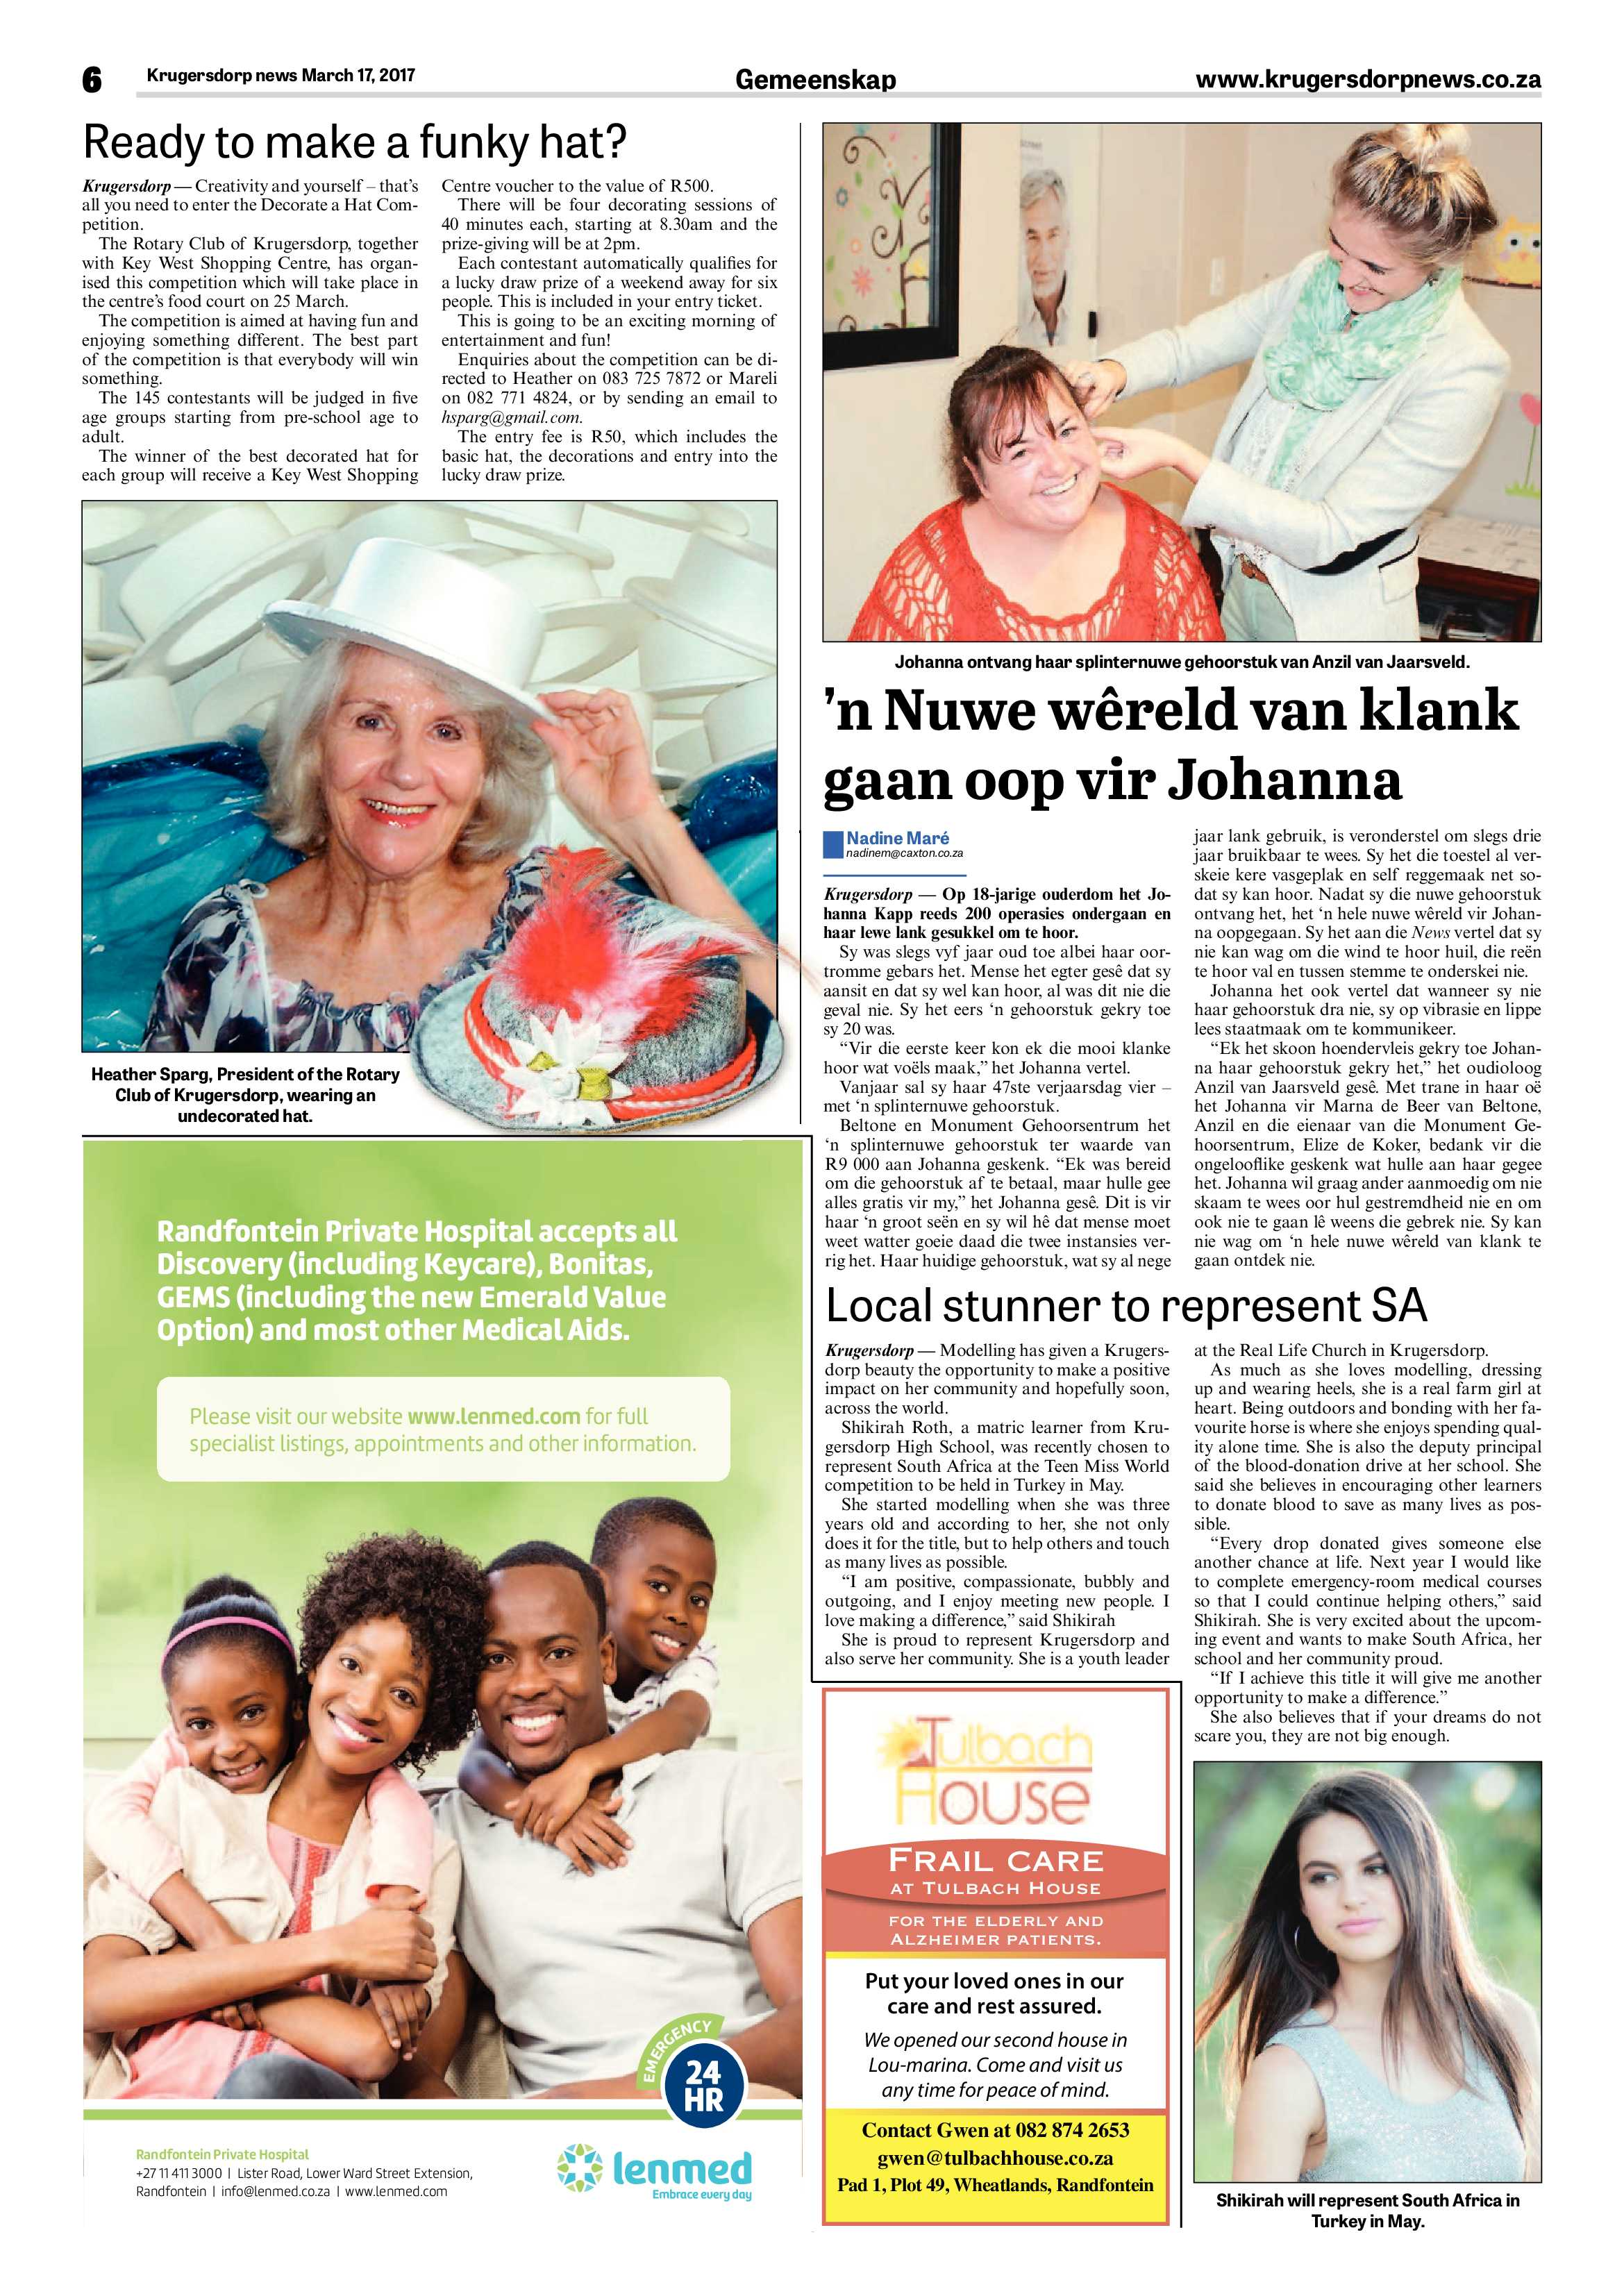 krugersdorp-news-17-march-2017-epapers-page-6